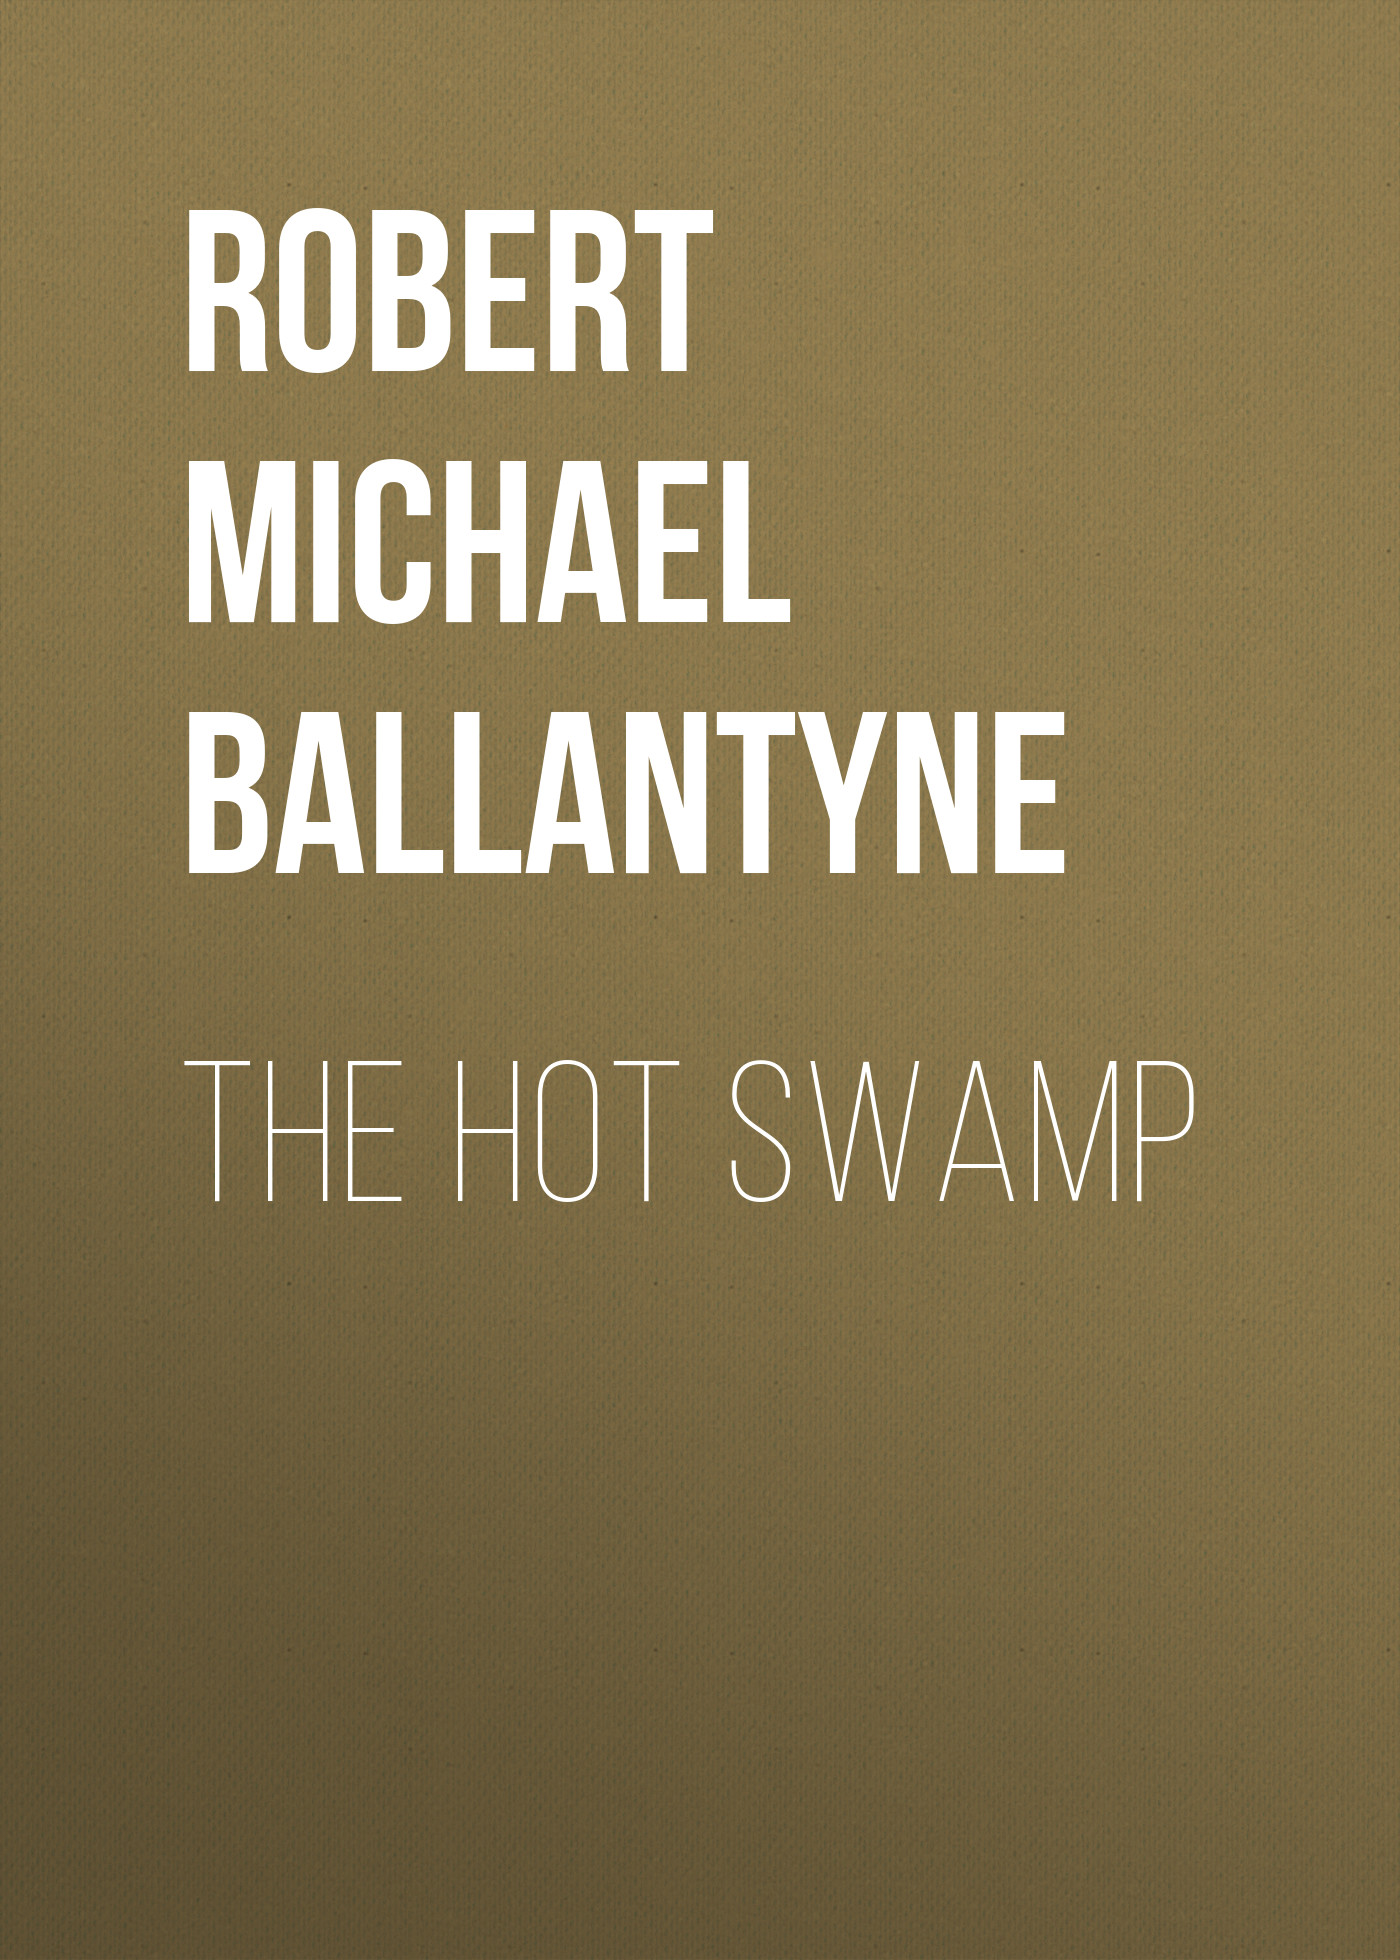 лучшая цена Robert Michael Ballantyne The Hot Swamp